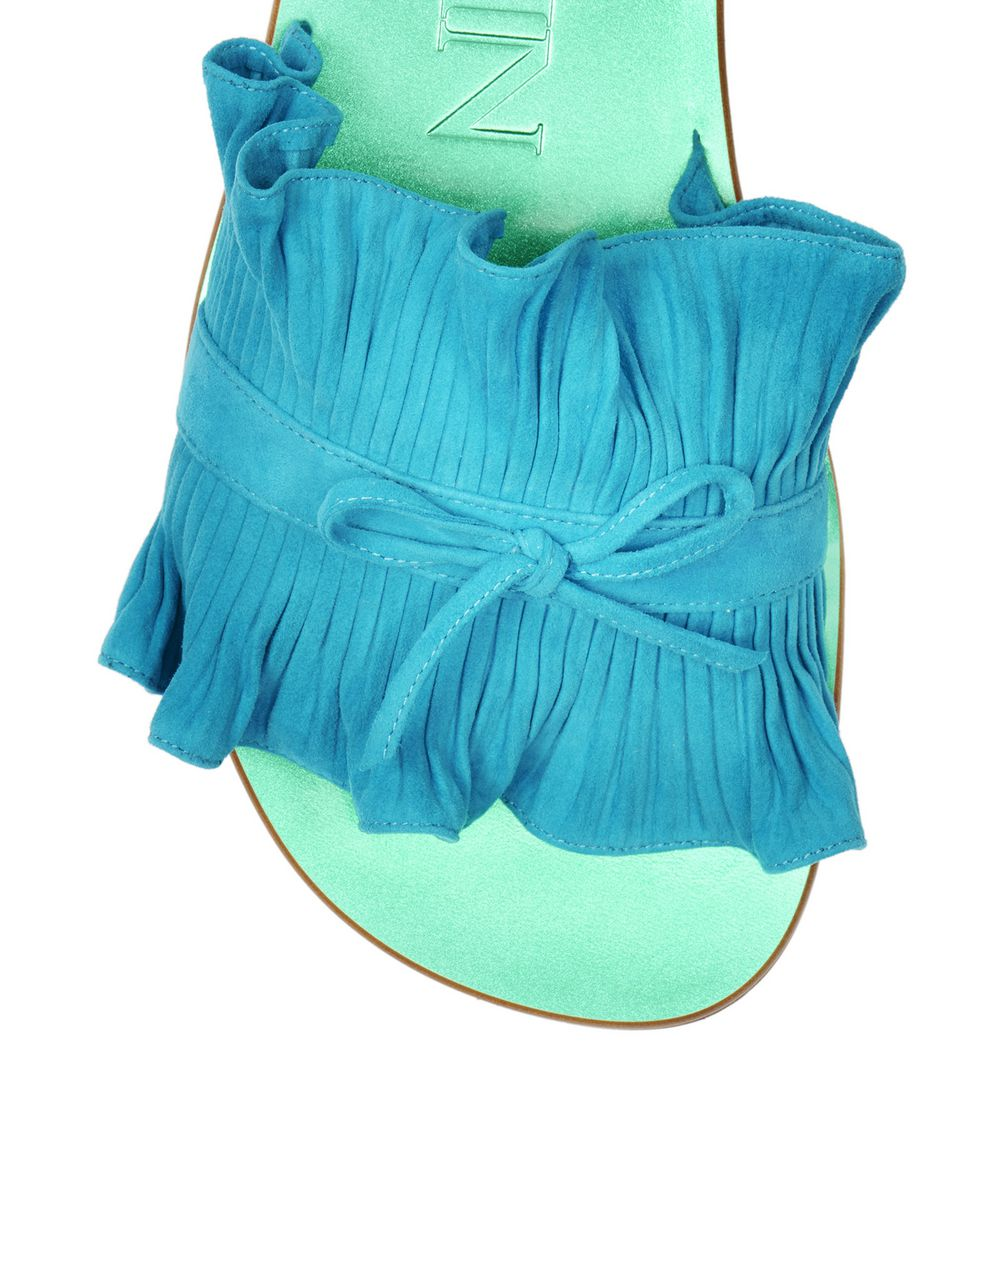 PLEATED FLAT SANDAL - Lanvin